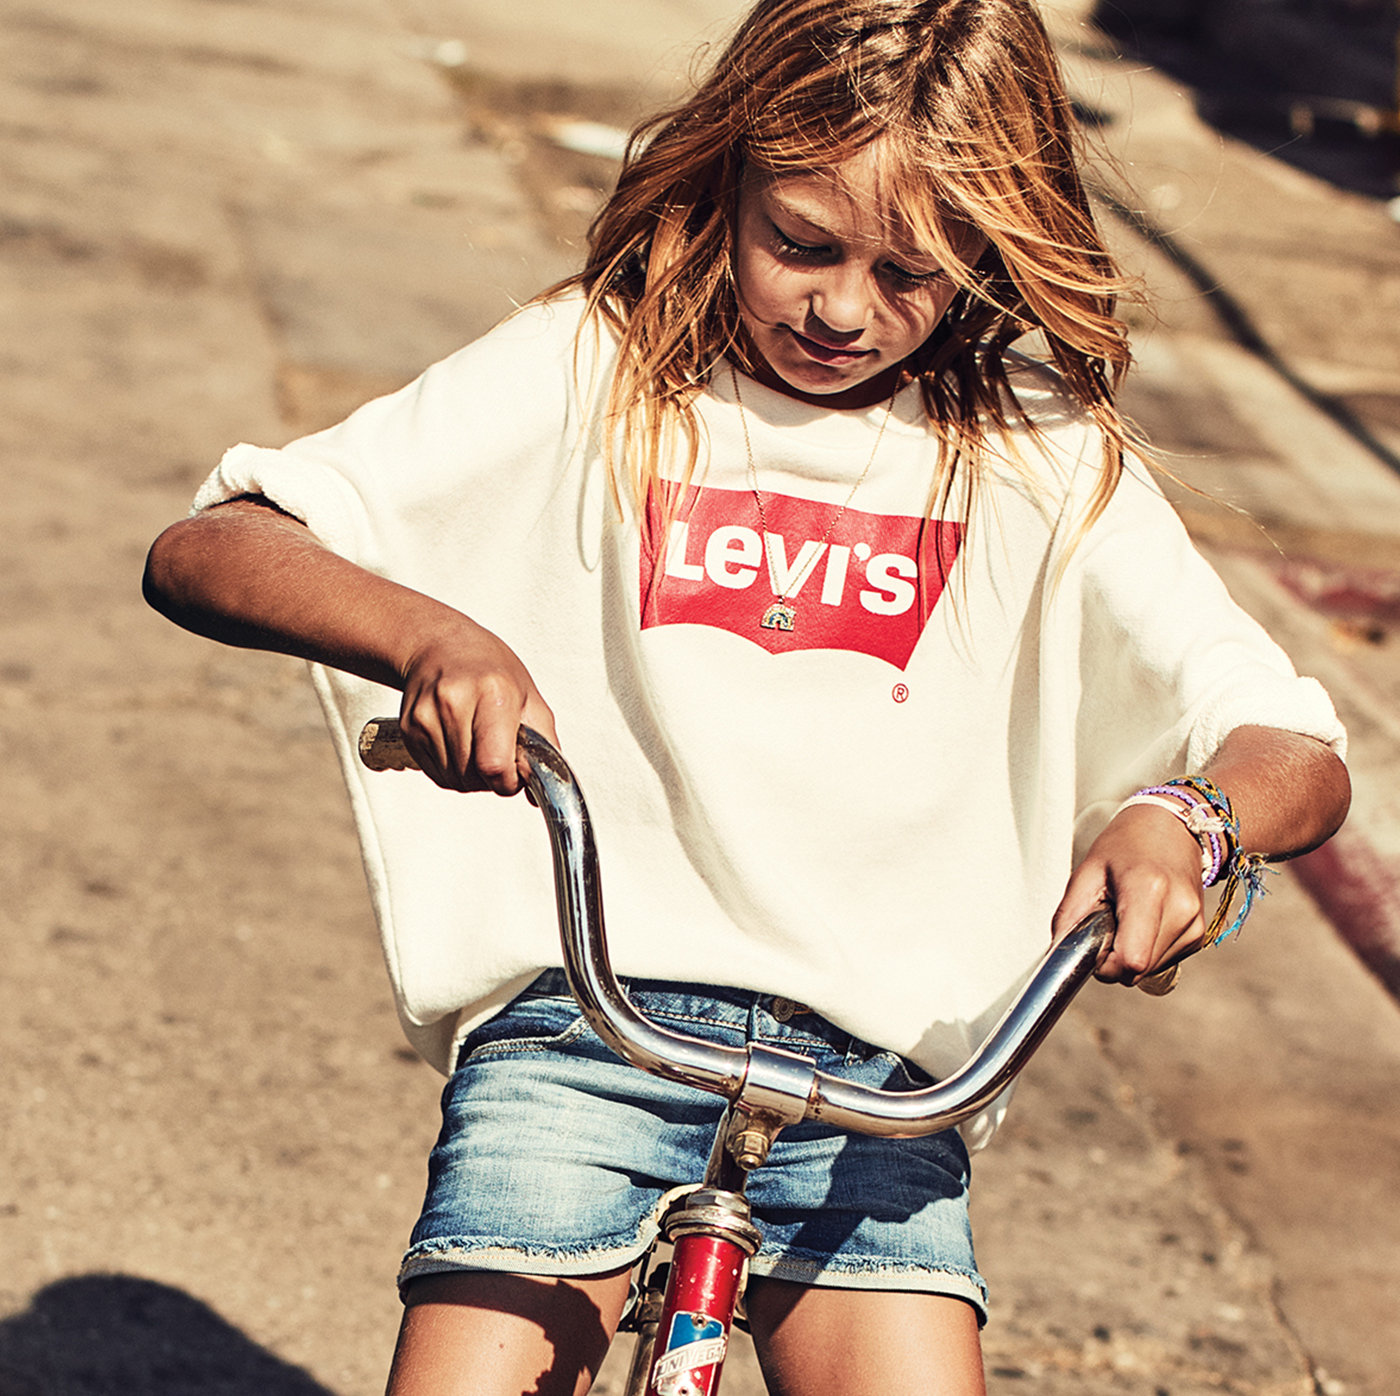 026681e776be8 Girl wearing levis Jeans